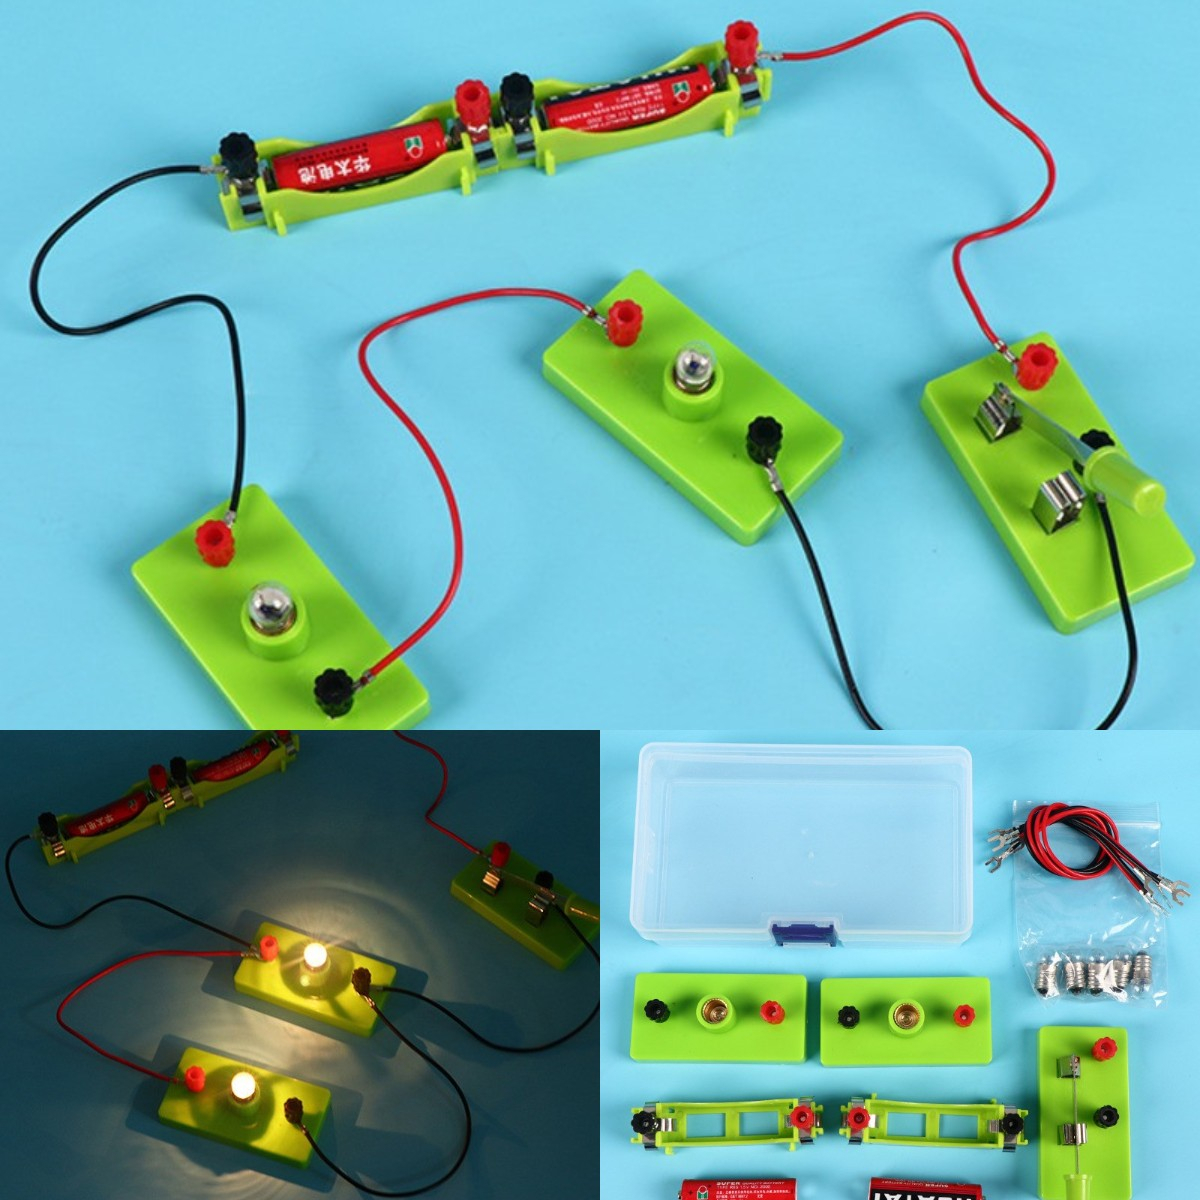 Kids Science Toy Basic Circuit Electricity Learning Physics Educational Toys For Children STEM Experiment Hands-On Ability Toys